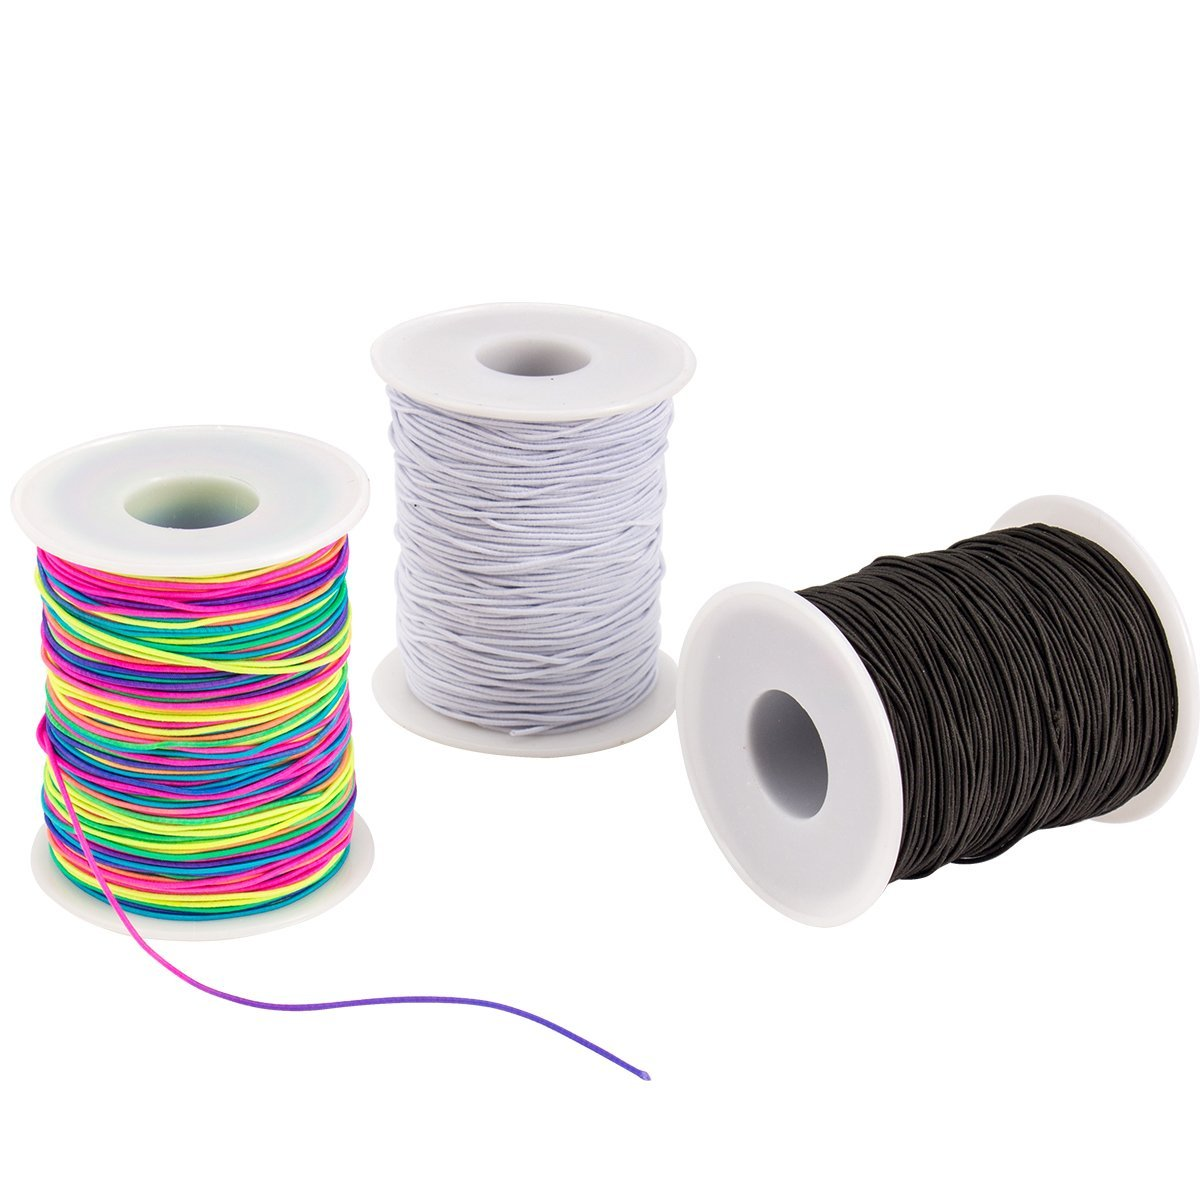 Apipi 3 Roll Elastic Cord Beading Threads Stretch String Fabric Crafting Cords - 328ft x 1mm Colorful Stretchy Bead Thread for Beading,Jewelry Making, Masks, DIY Crafting(Rainbow,Black, White)